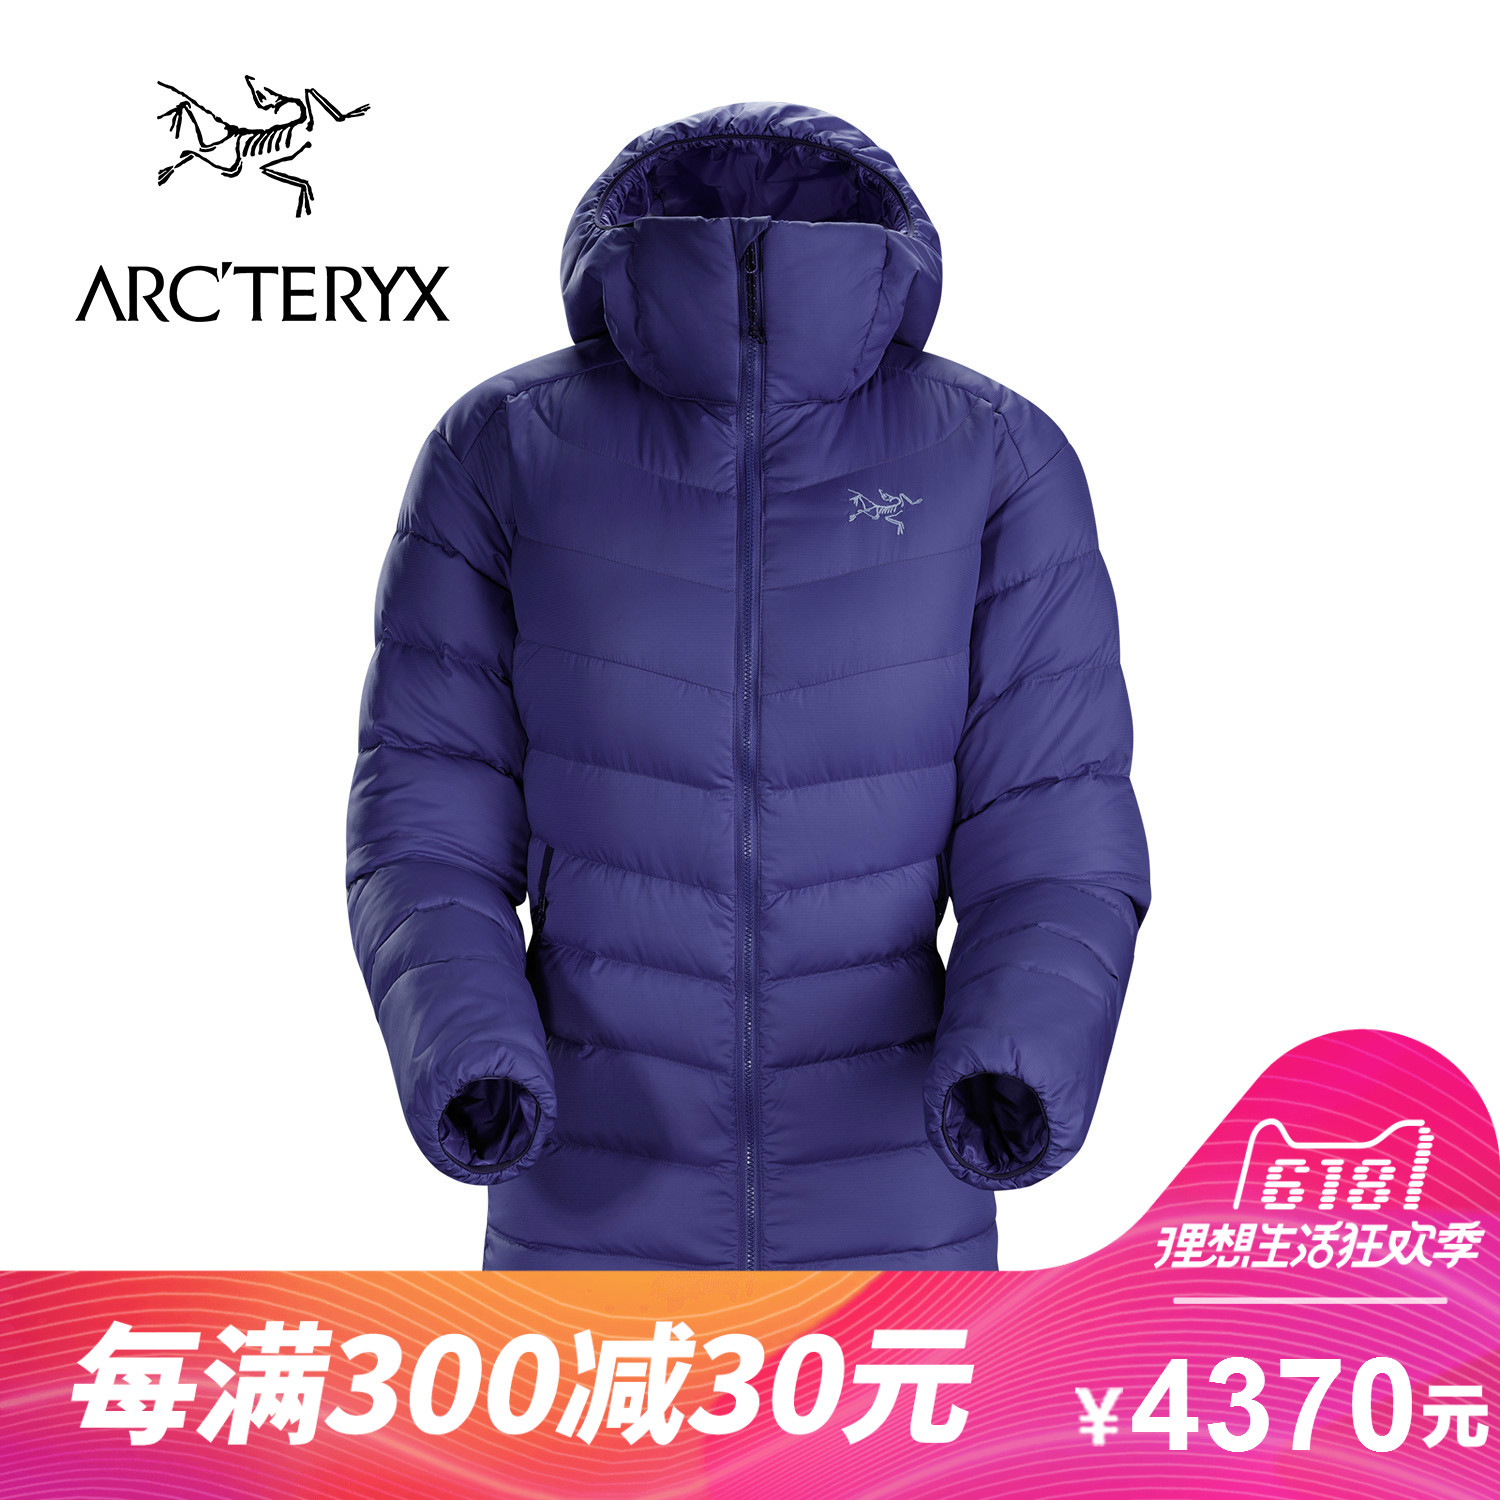 ARCTERYX / Archaeopteryx Women's Trekking Warm Hooded Down Jacket Thorium AR Hoody 17235